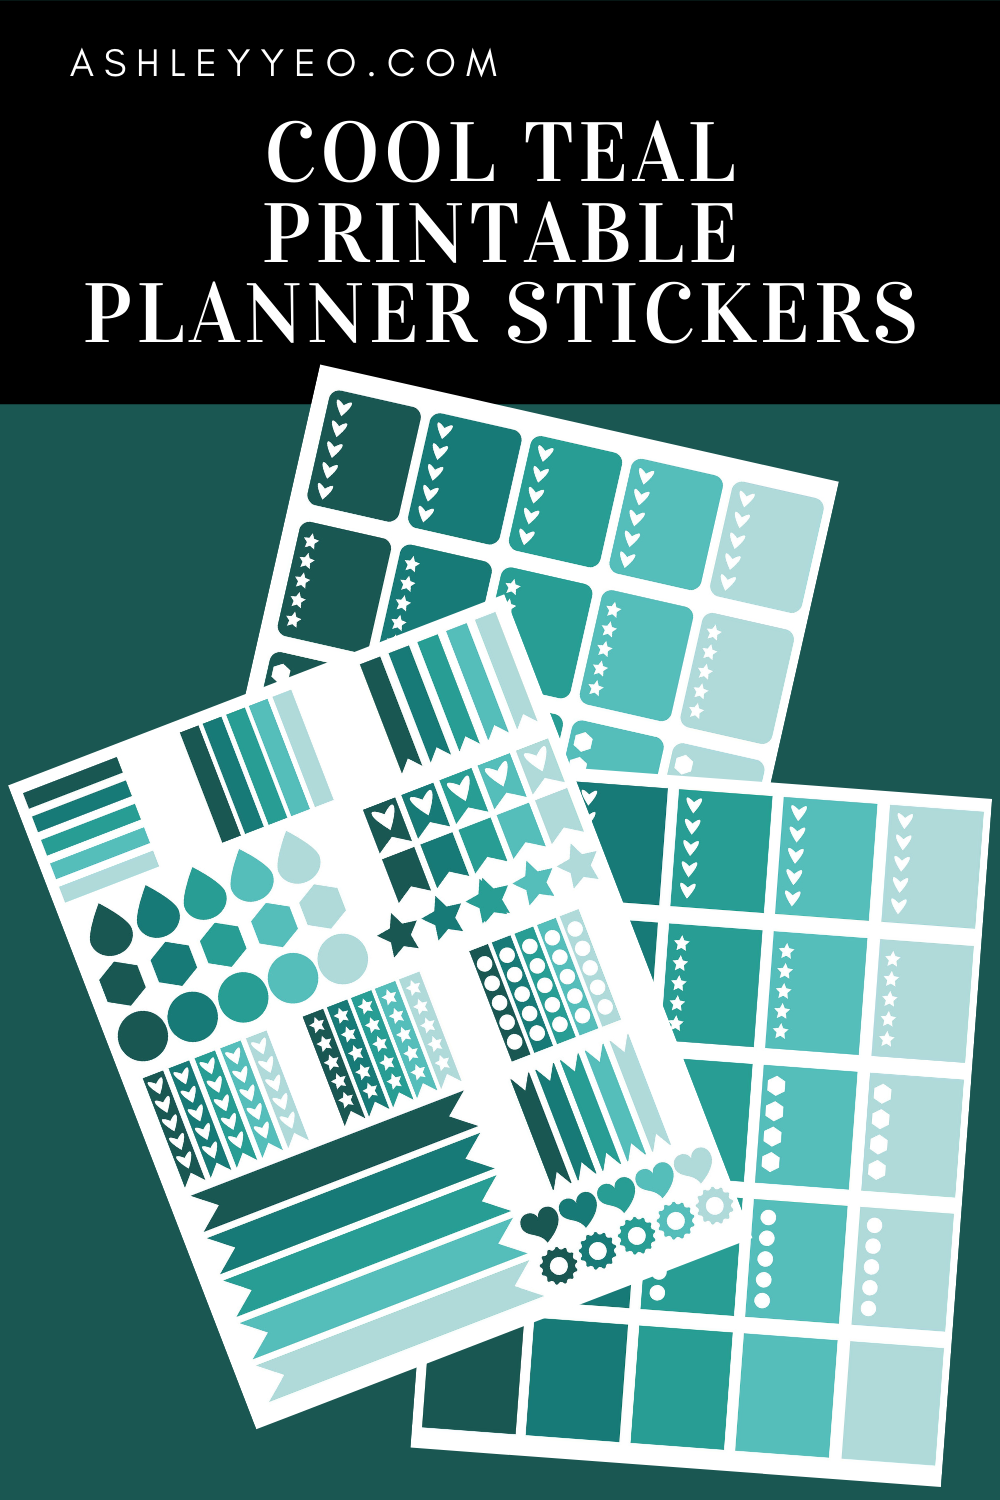 Cool Teal Printable Planner Stickers